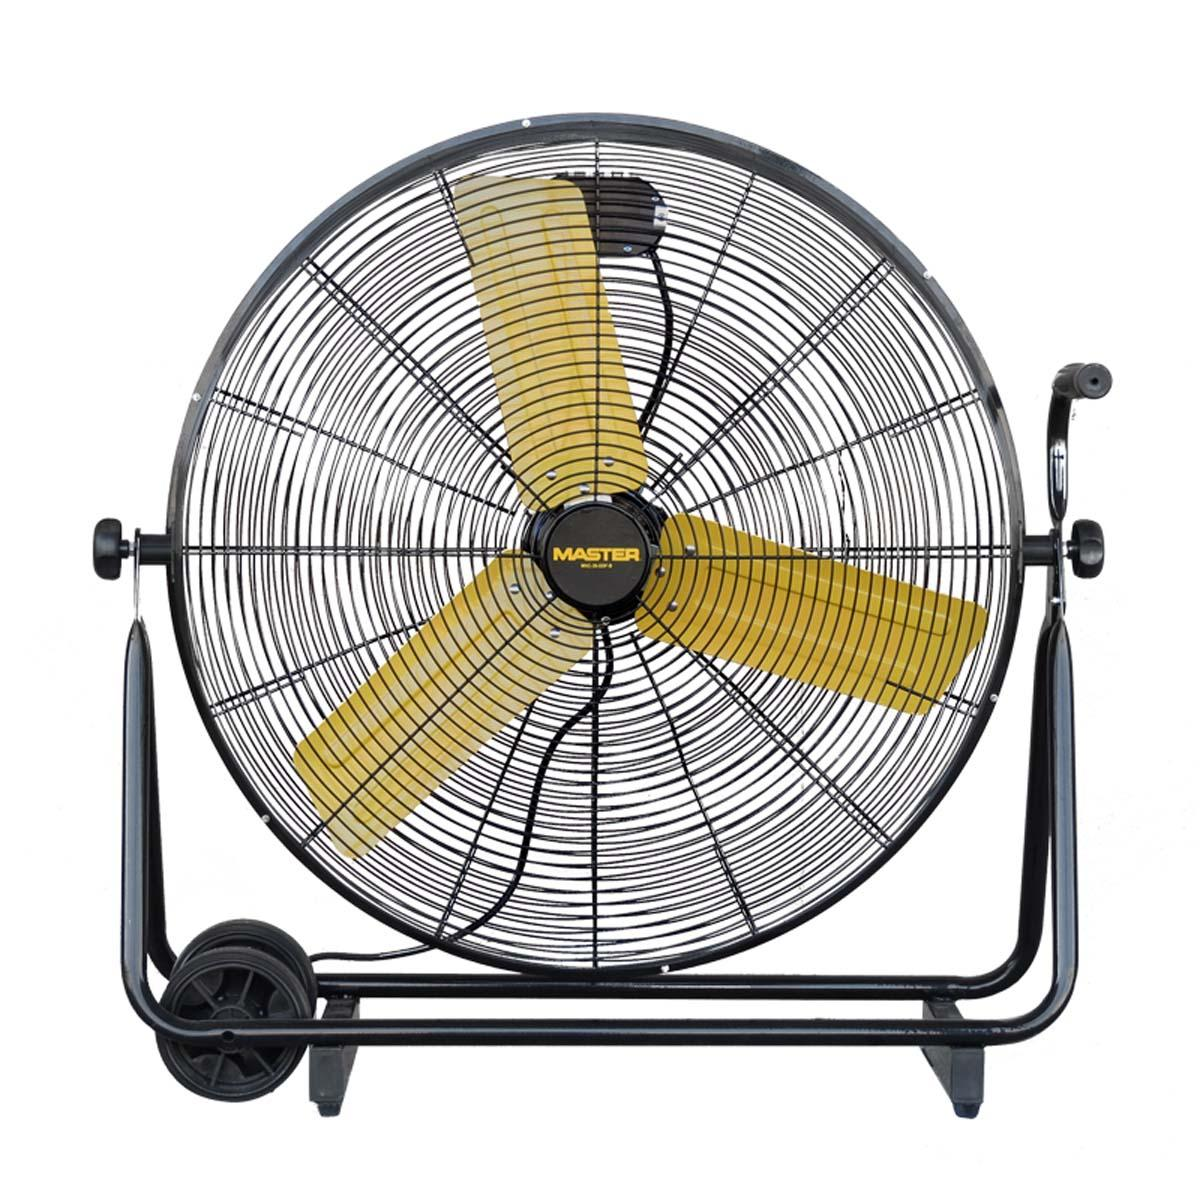 "MASTER 30"" High Velocity Tiltable Direct Drive Drum Fan"